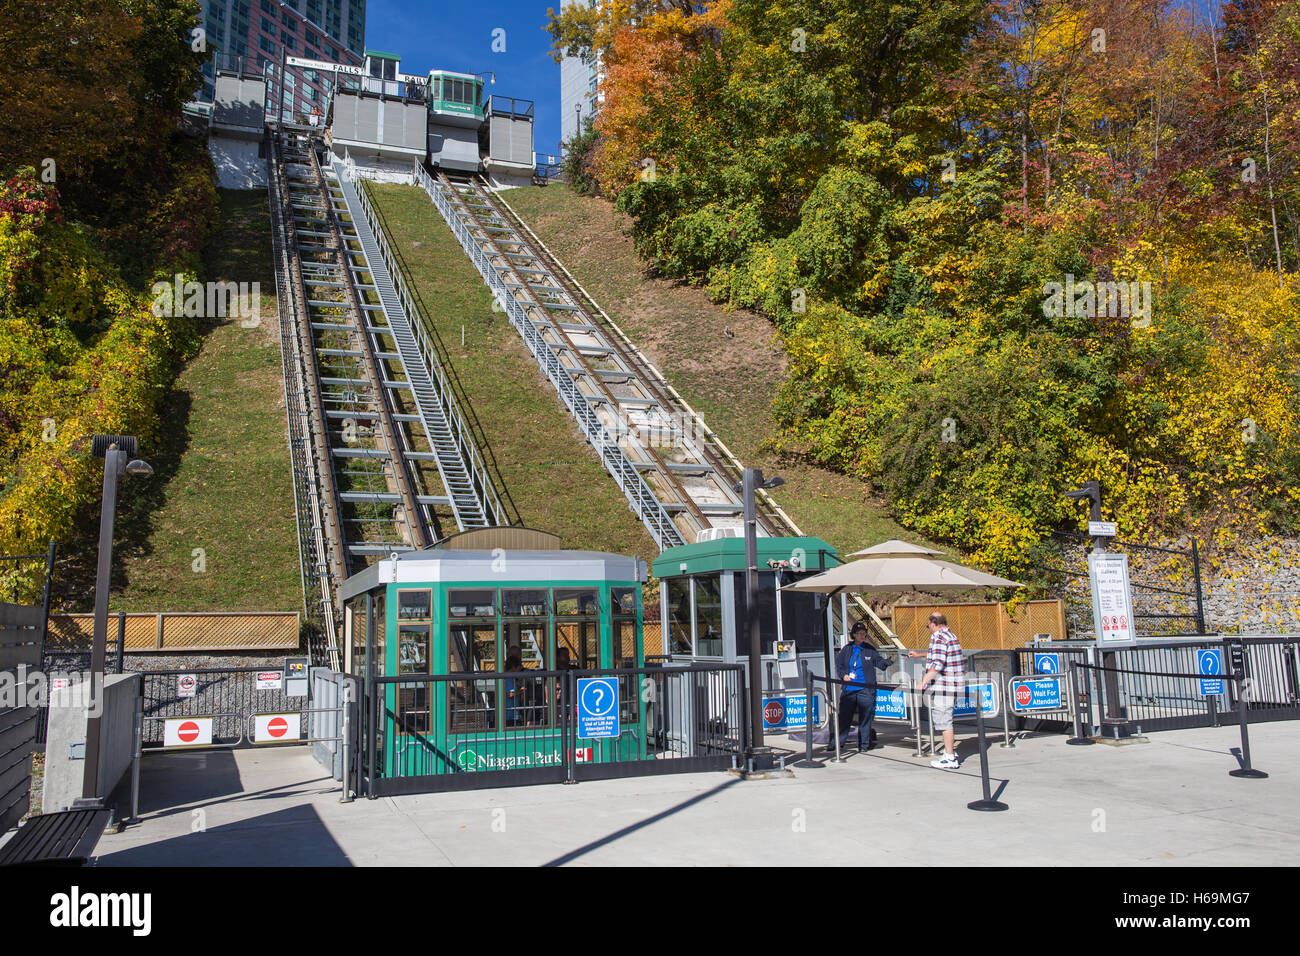 A passenger presents his ticket to board the Falls Incline Railway at Falls Incline Plaza in Niagara Falls, Ontario, - Stock Image